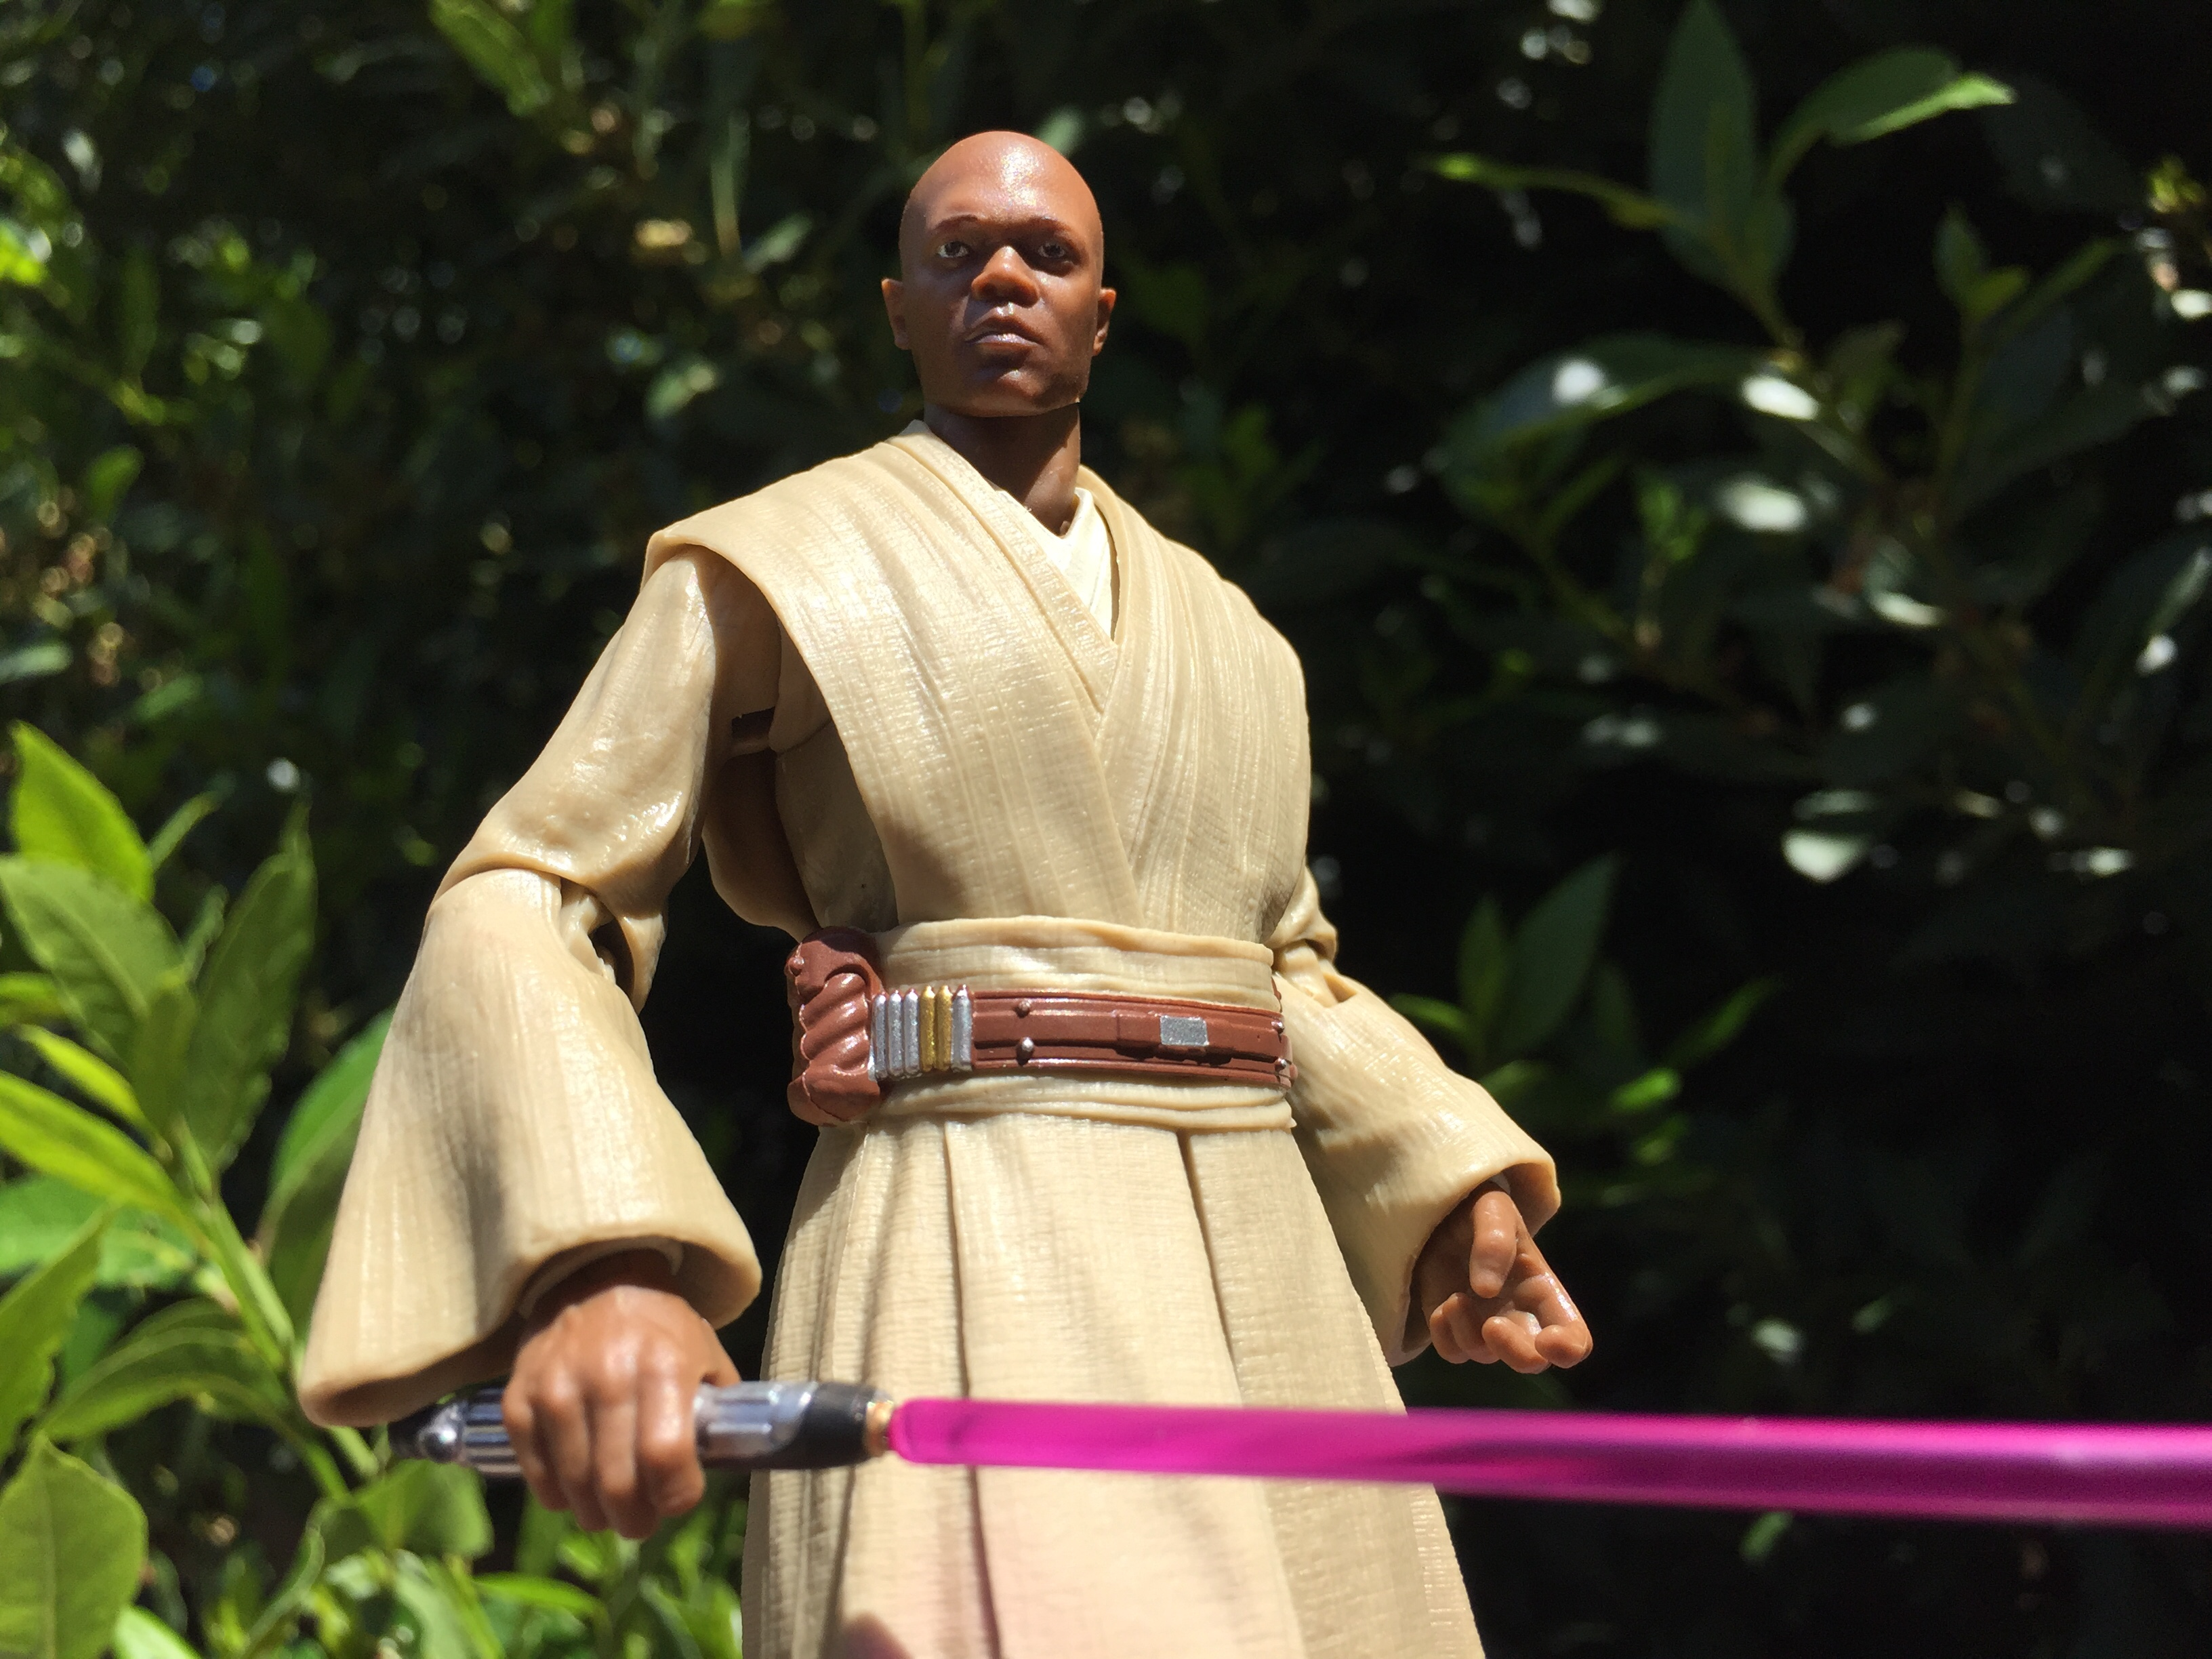 Black Series Review Mace Windu Star Wars Revenge Of The Sith Future Of The Force